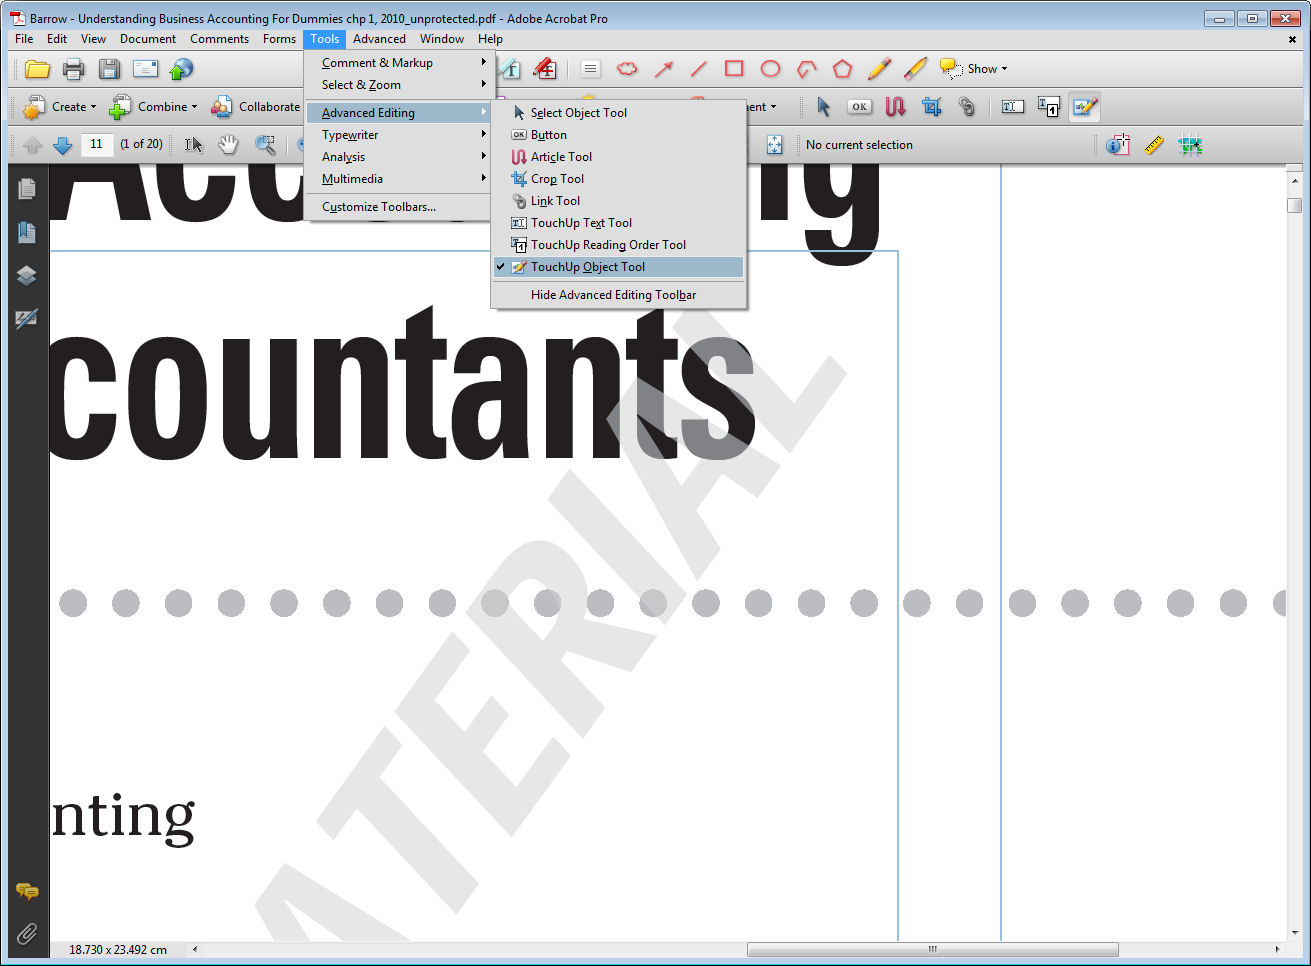 Acts of Leadership: Removing pdf watermarks